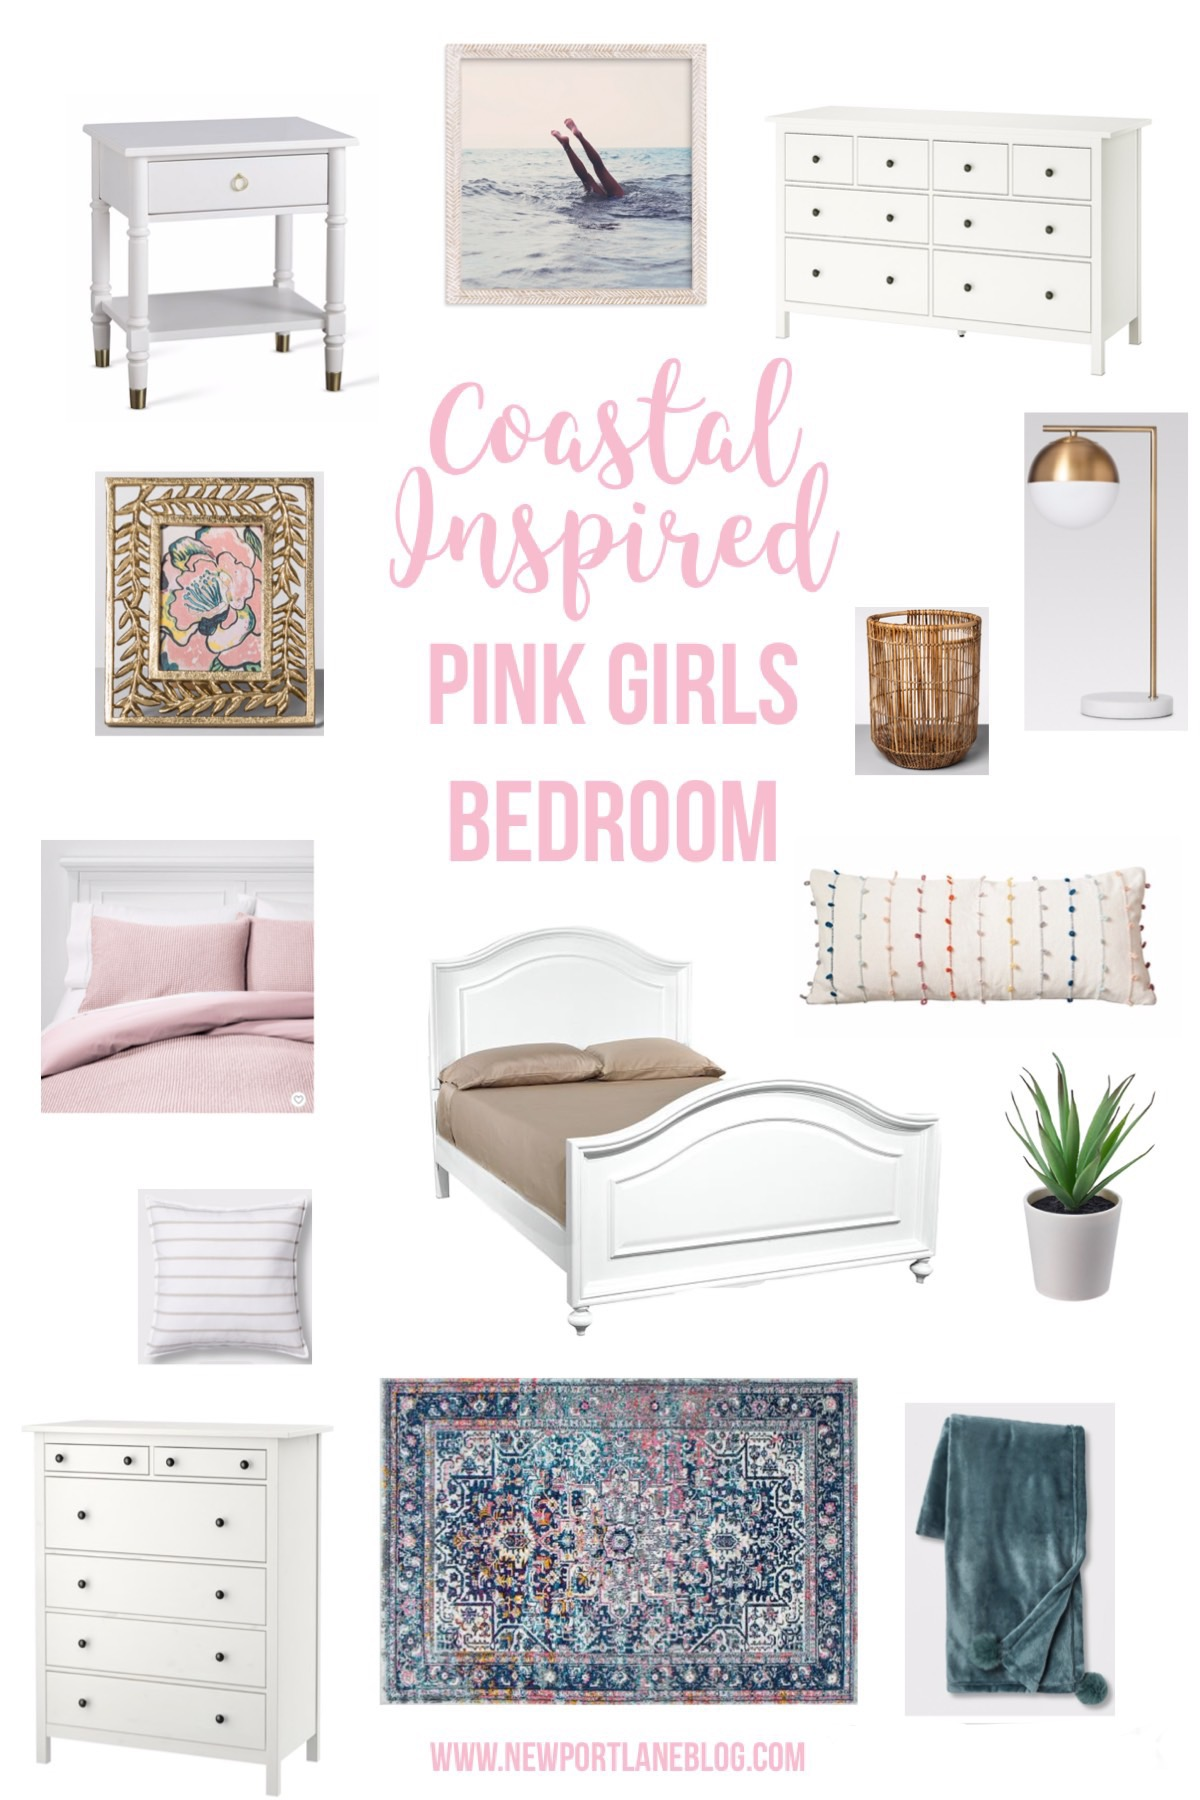 Coastal Inspired Pink Girls Bedroom Ideas. Light and bright girly bedroom ideas. #girlsbedroomideas #pinkbedroom #decor